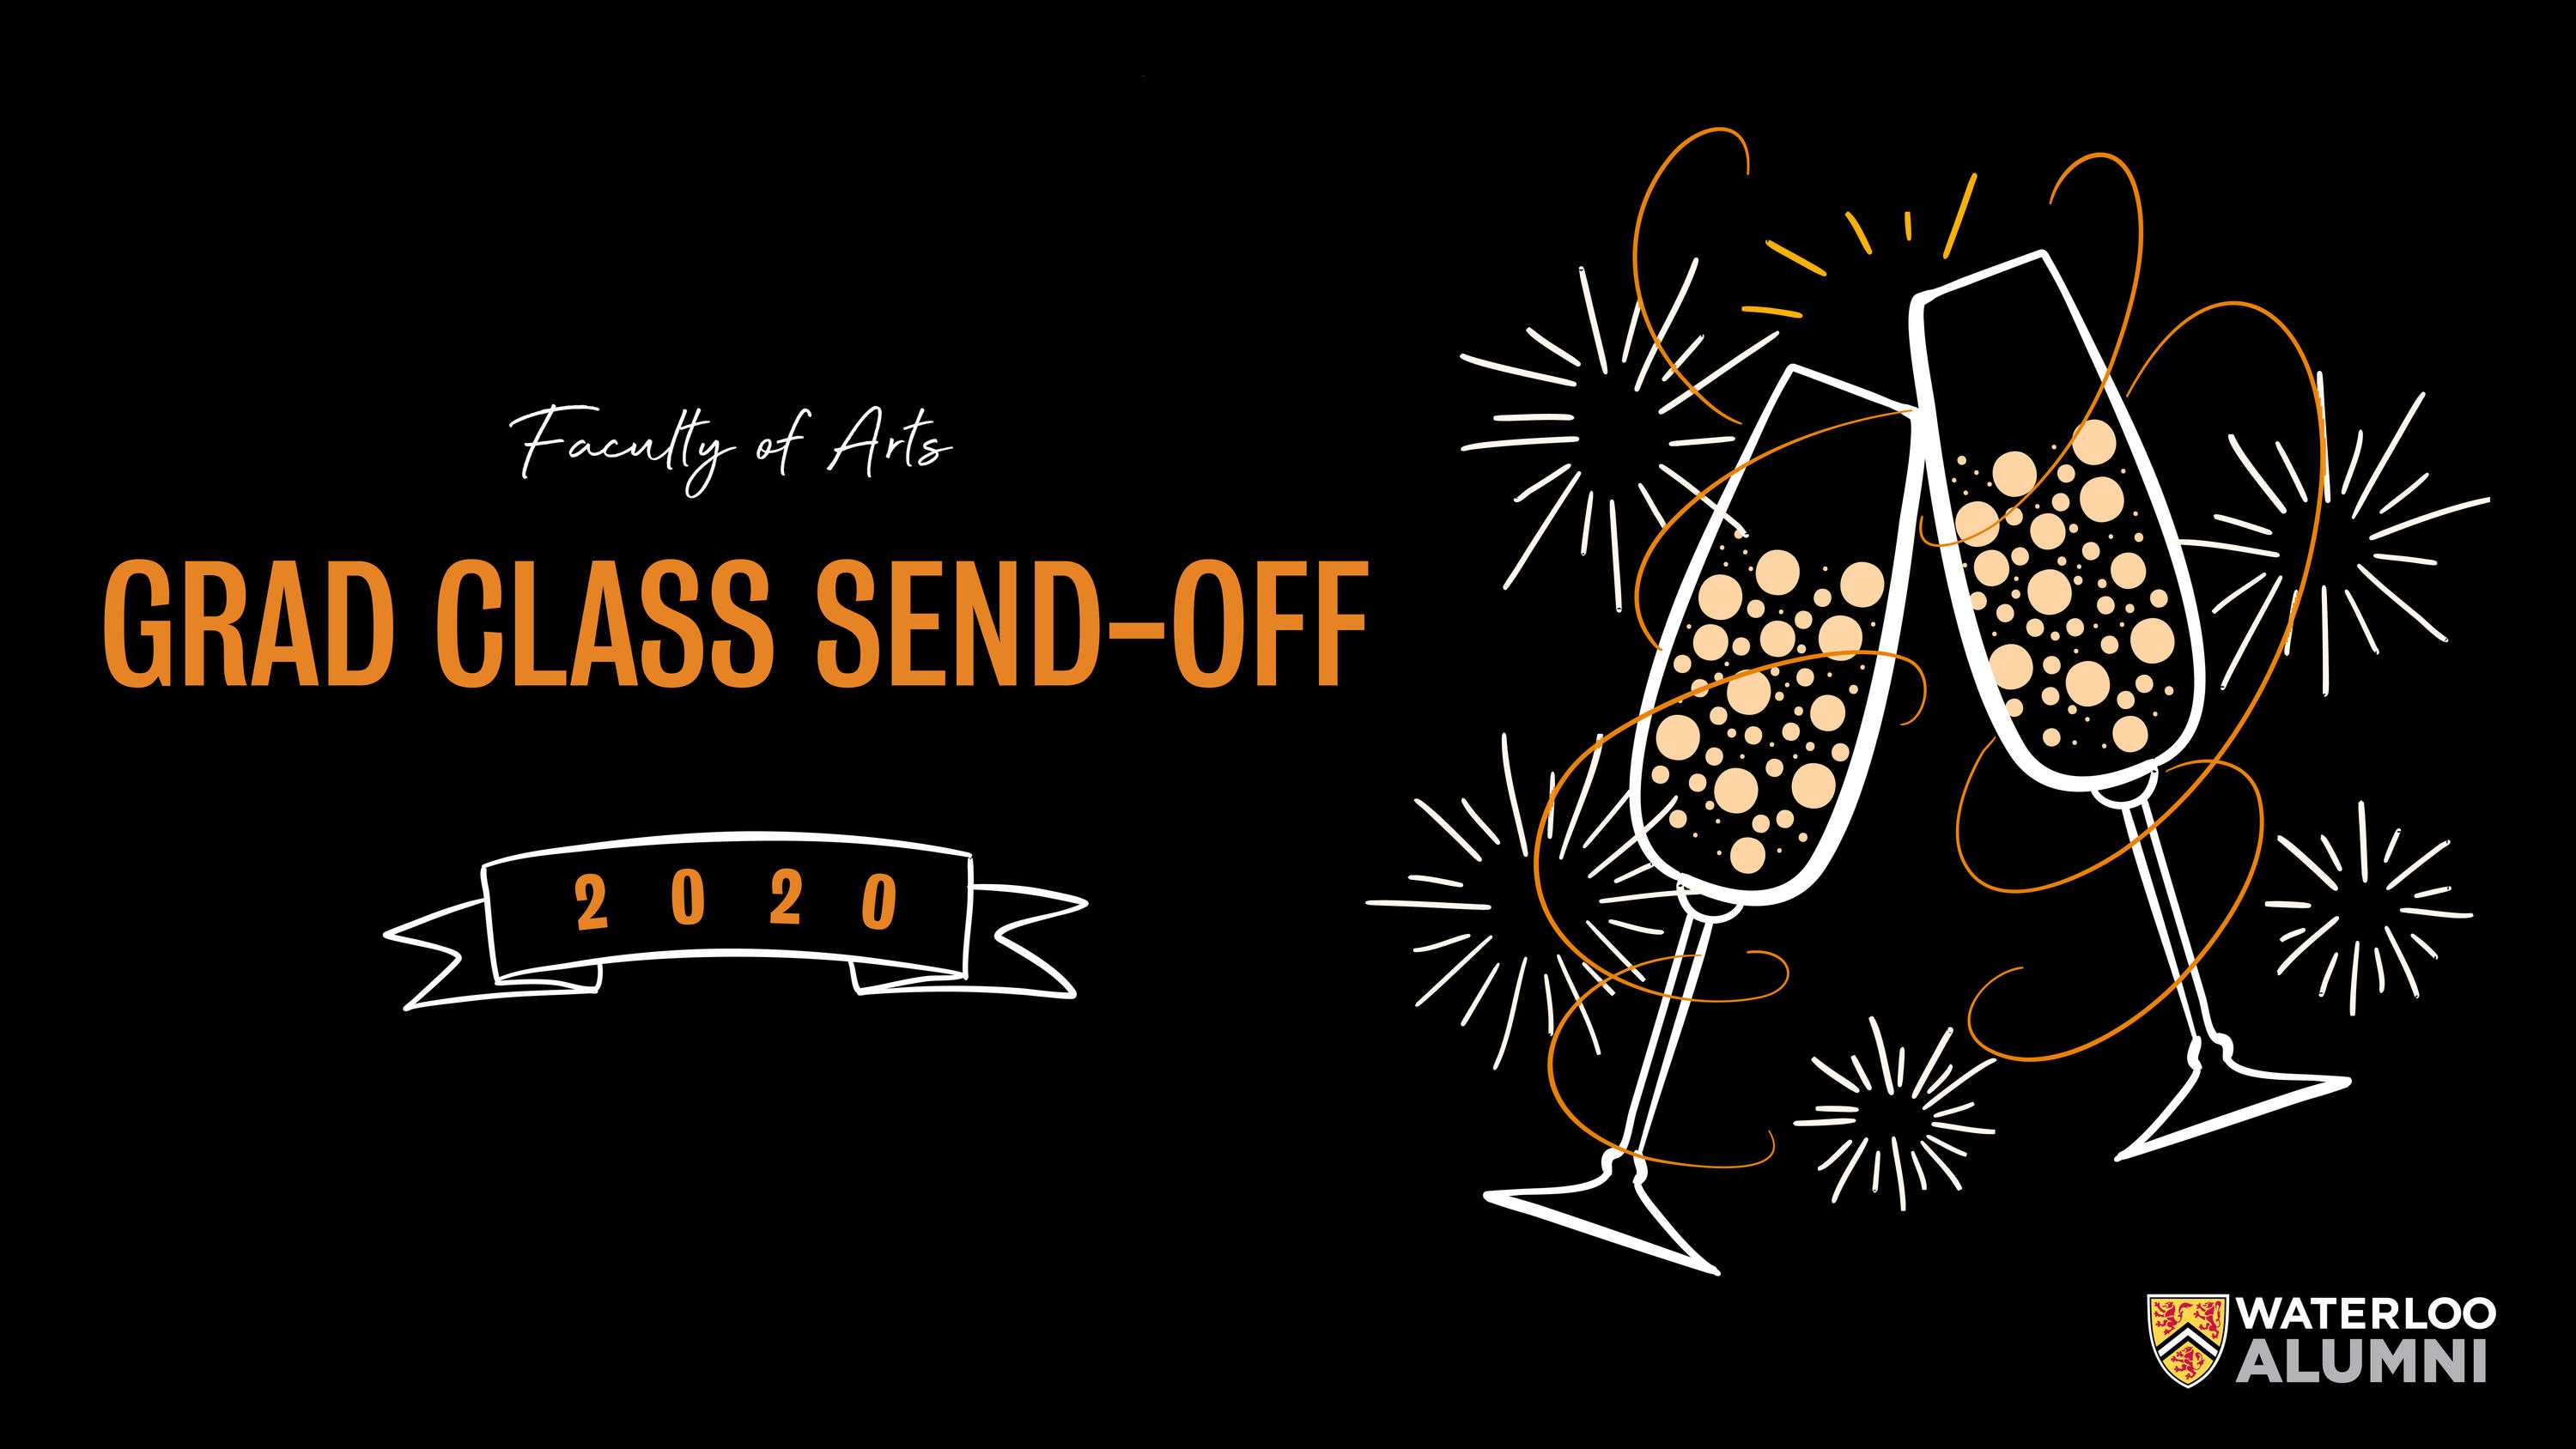 Arts Grad Send Off web banner graphic